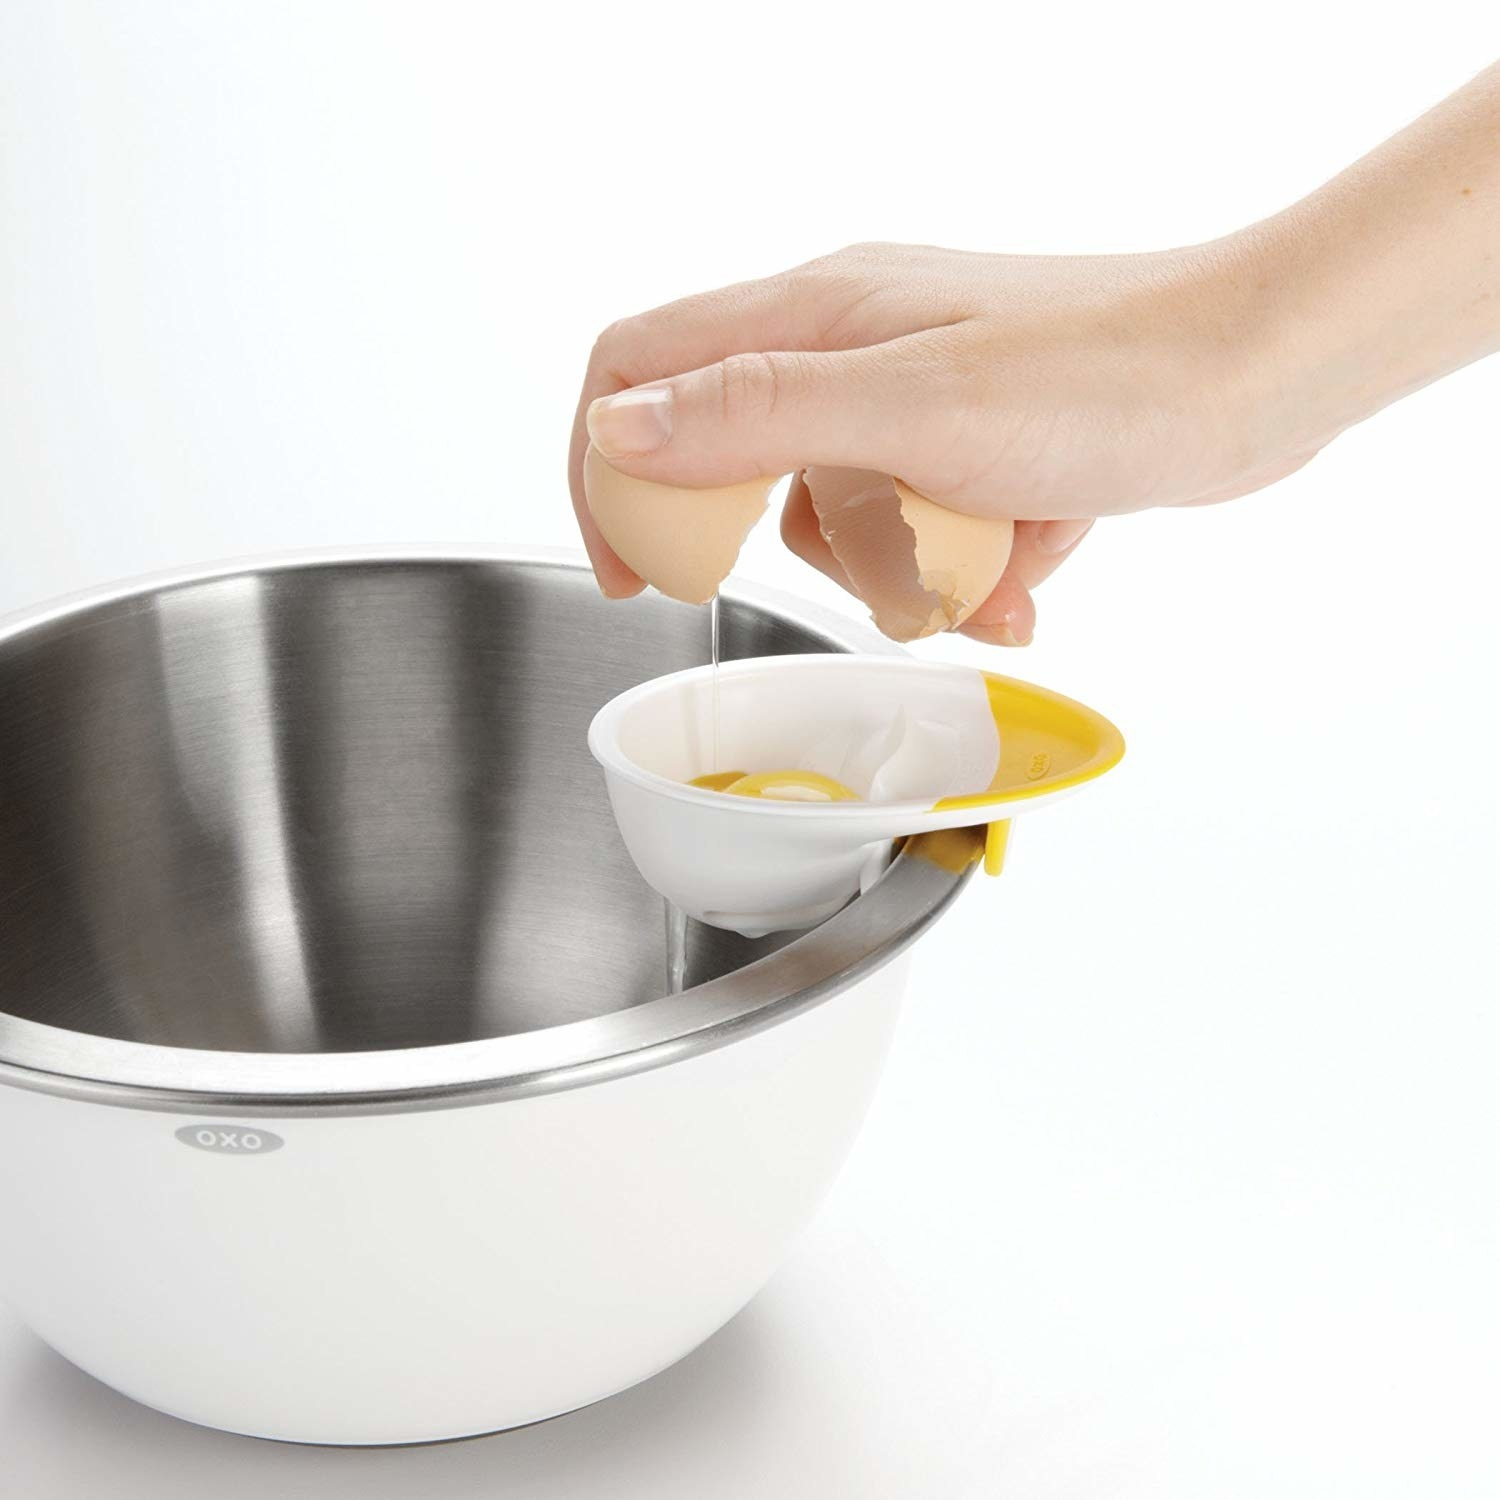 The egg separator attached to the side of a bowl with a model's hand breaking an egg into it